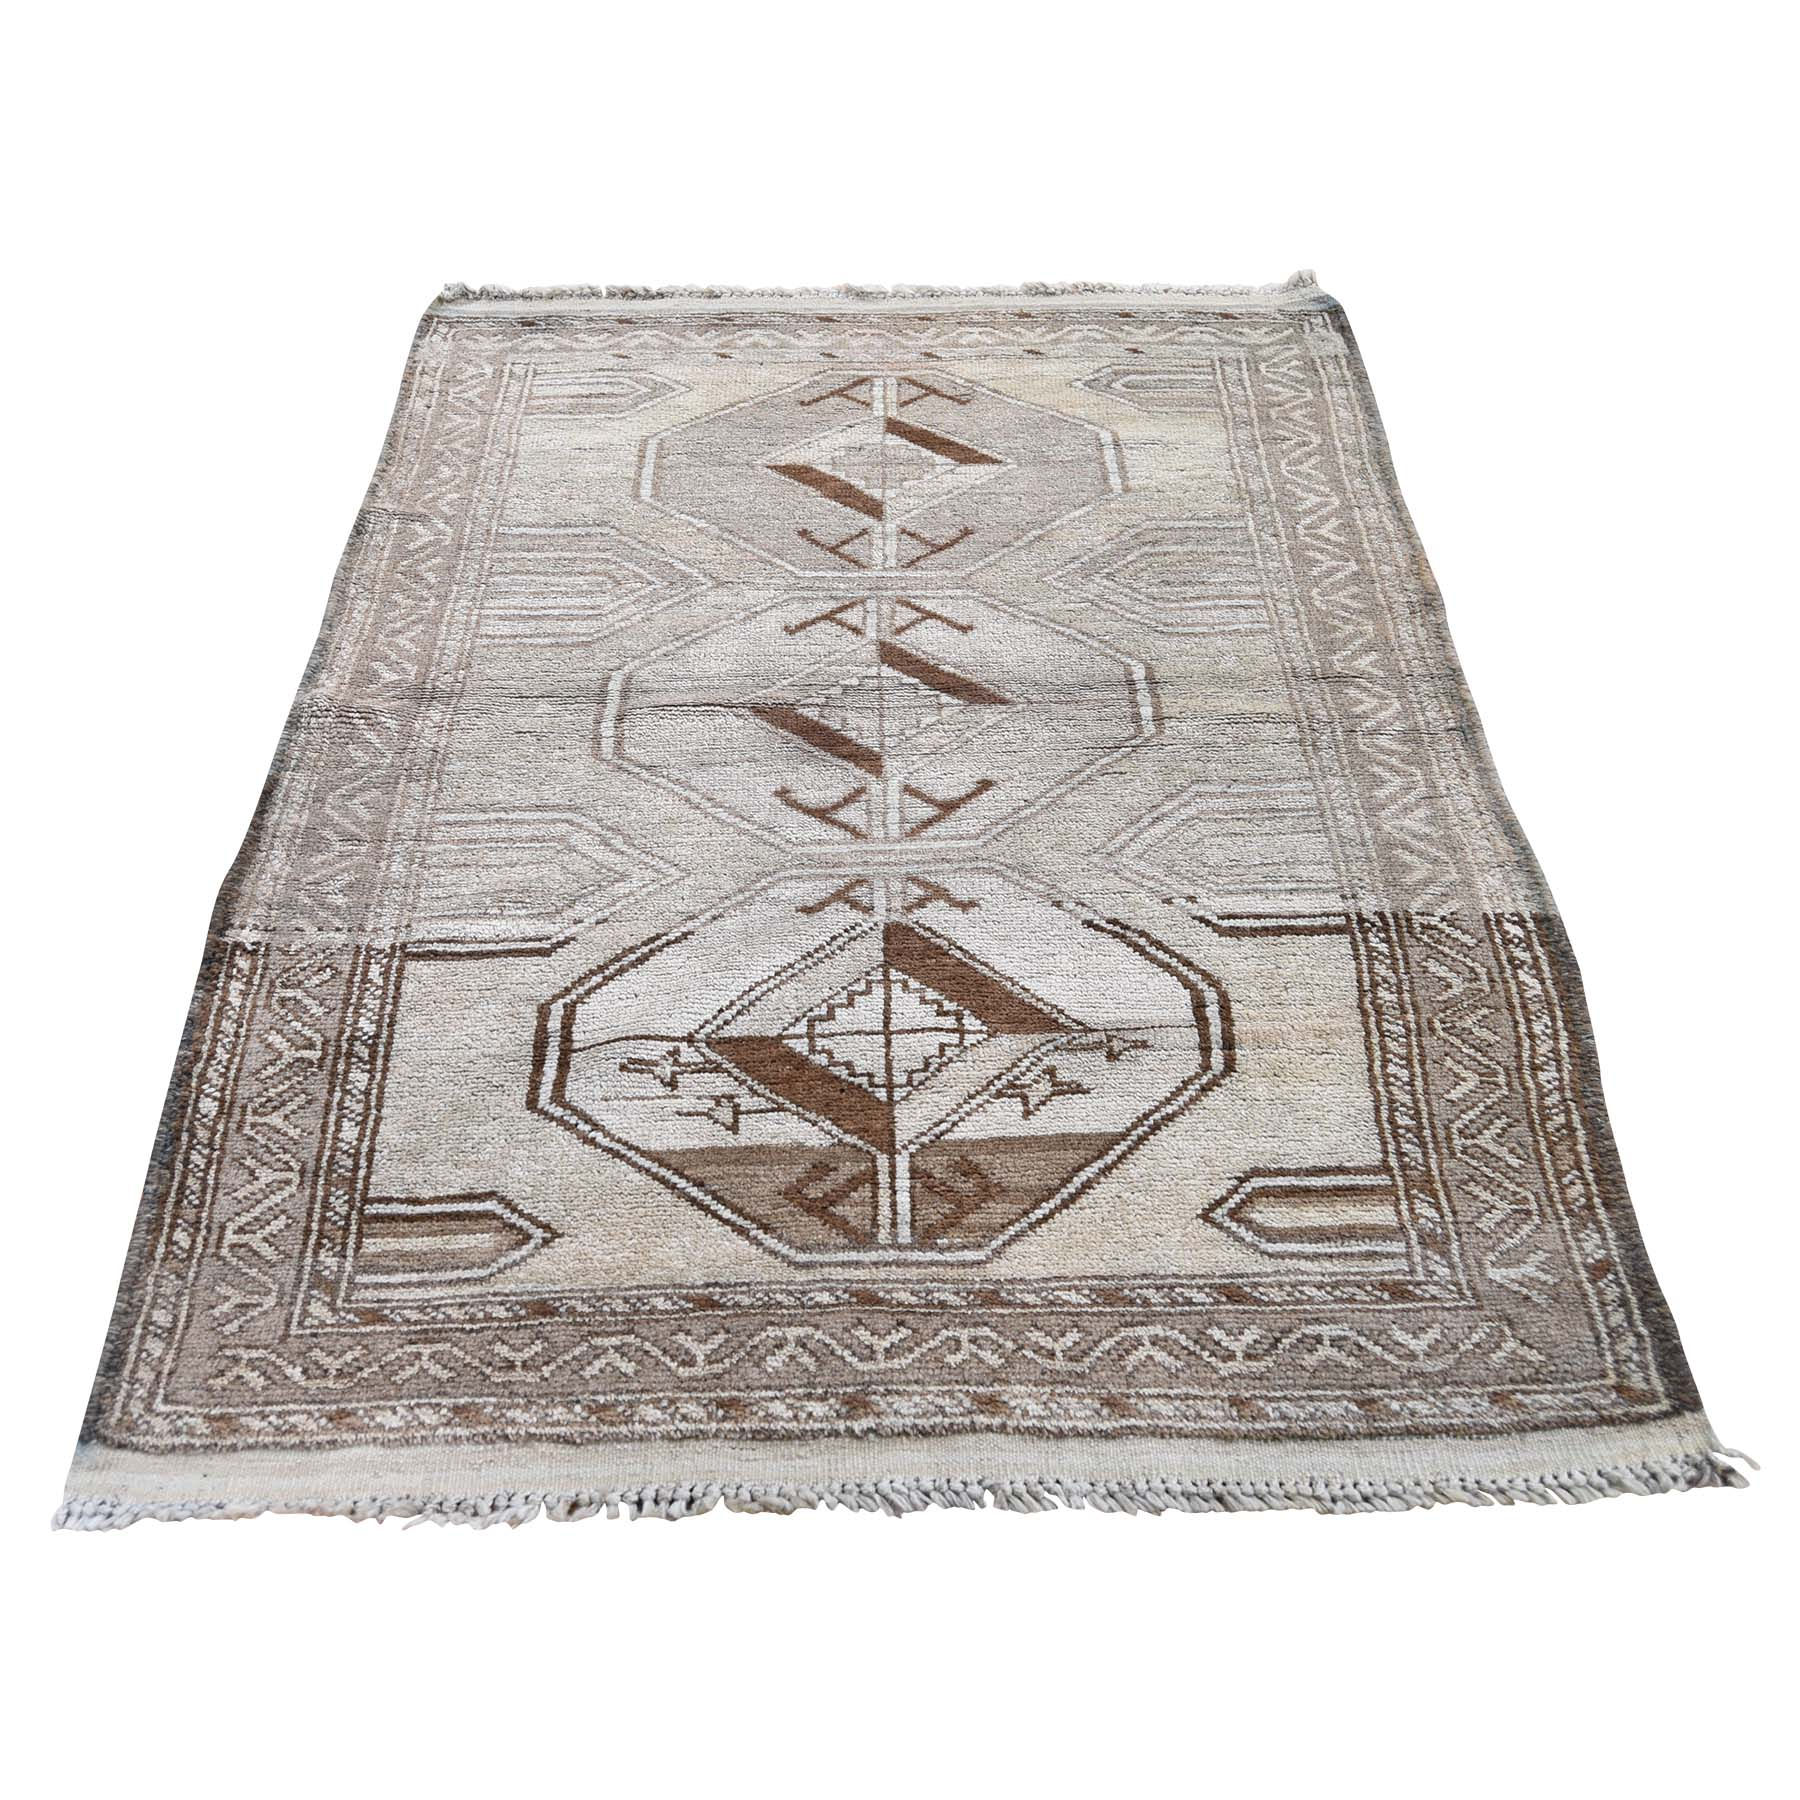 "2'10""X4'3"" Vintage Afghan Baluch Natural Colors Hand-Knotted Pure Wool Oriental Rug moadecdc"